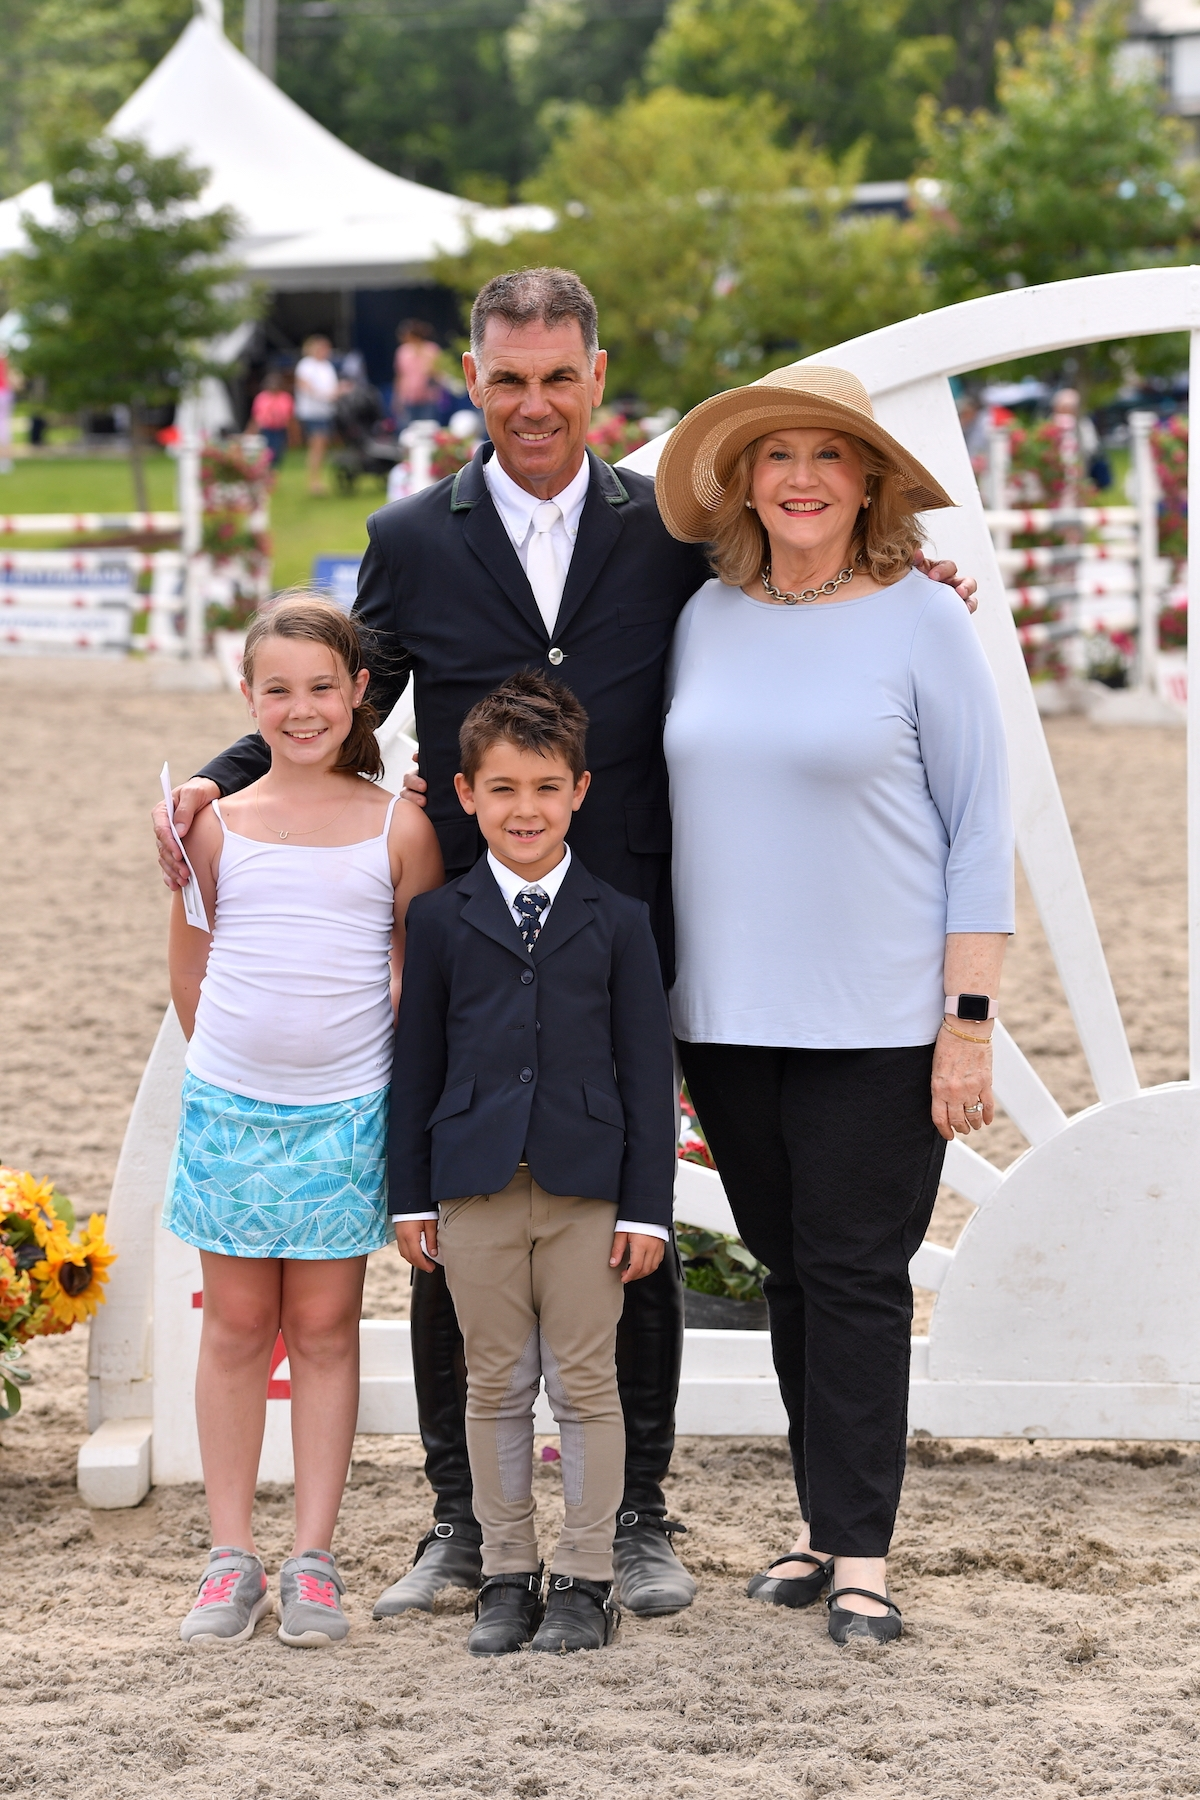 Jimmy Torano (center) is presented as winner of the $10,000 Sir Ruly, Inc. Open Jumper Awards by, from left to right, his daughter, Natalia, son, JJ, and Ruly Torano's wife, Maria Teresa Torano, at the 2017 Vermont Summer Festival at Harold Beebe Farm in East Dorset, VT.<br><b>Photo by <a href='http://www.andrewryback.com/' target='_blank'>Andrew Ryback Photography</a></b>